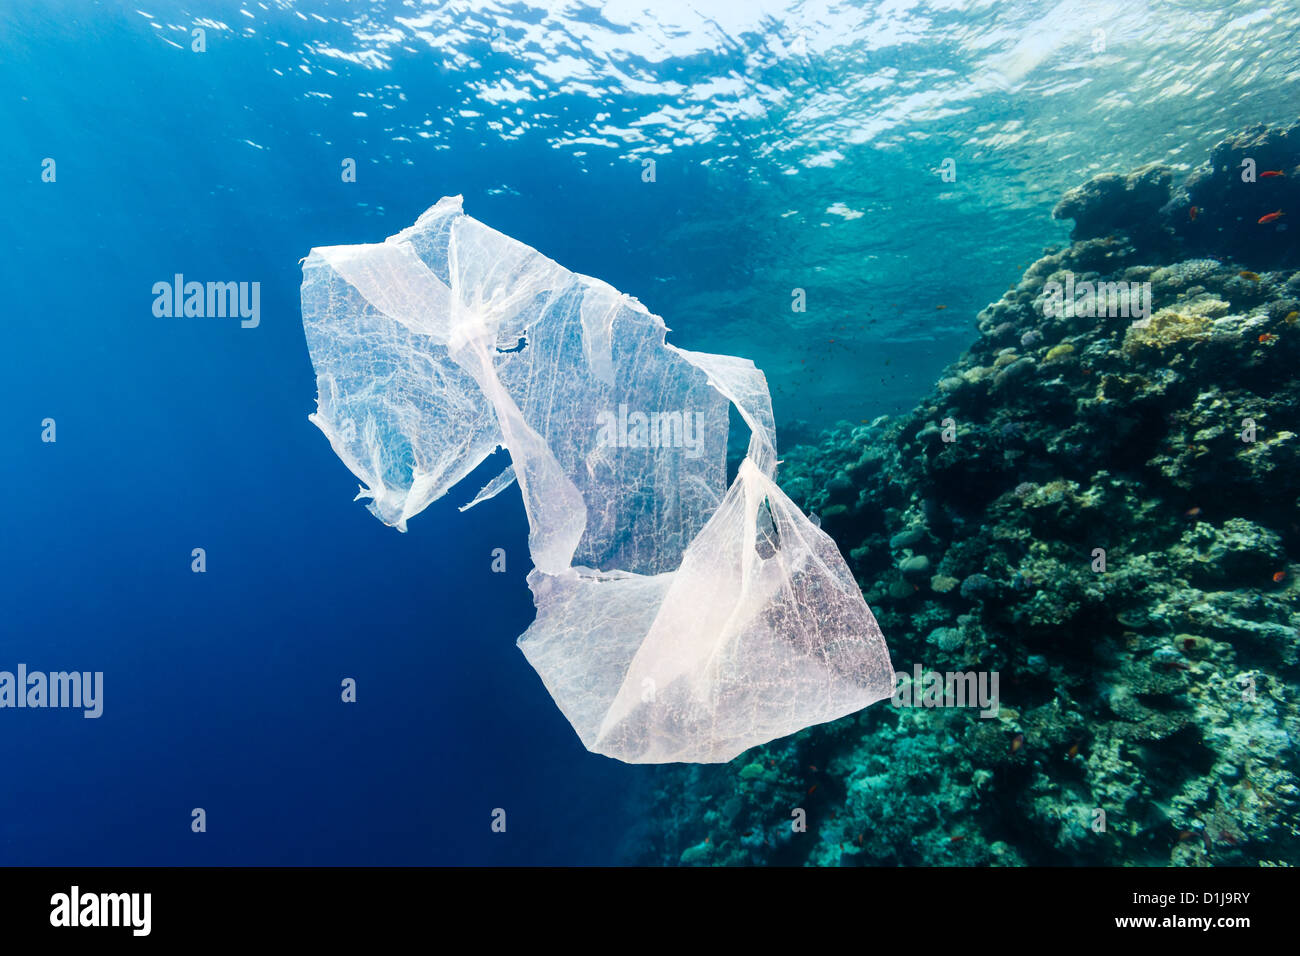 A discarded plastic bag drifts in the ocean next to a tropical coral reef - Stock Image